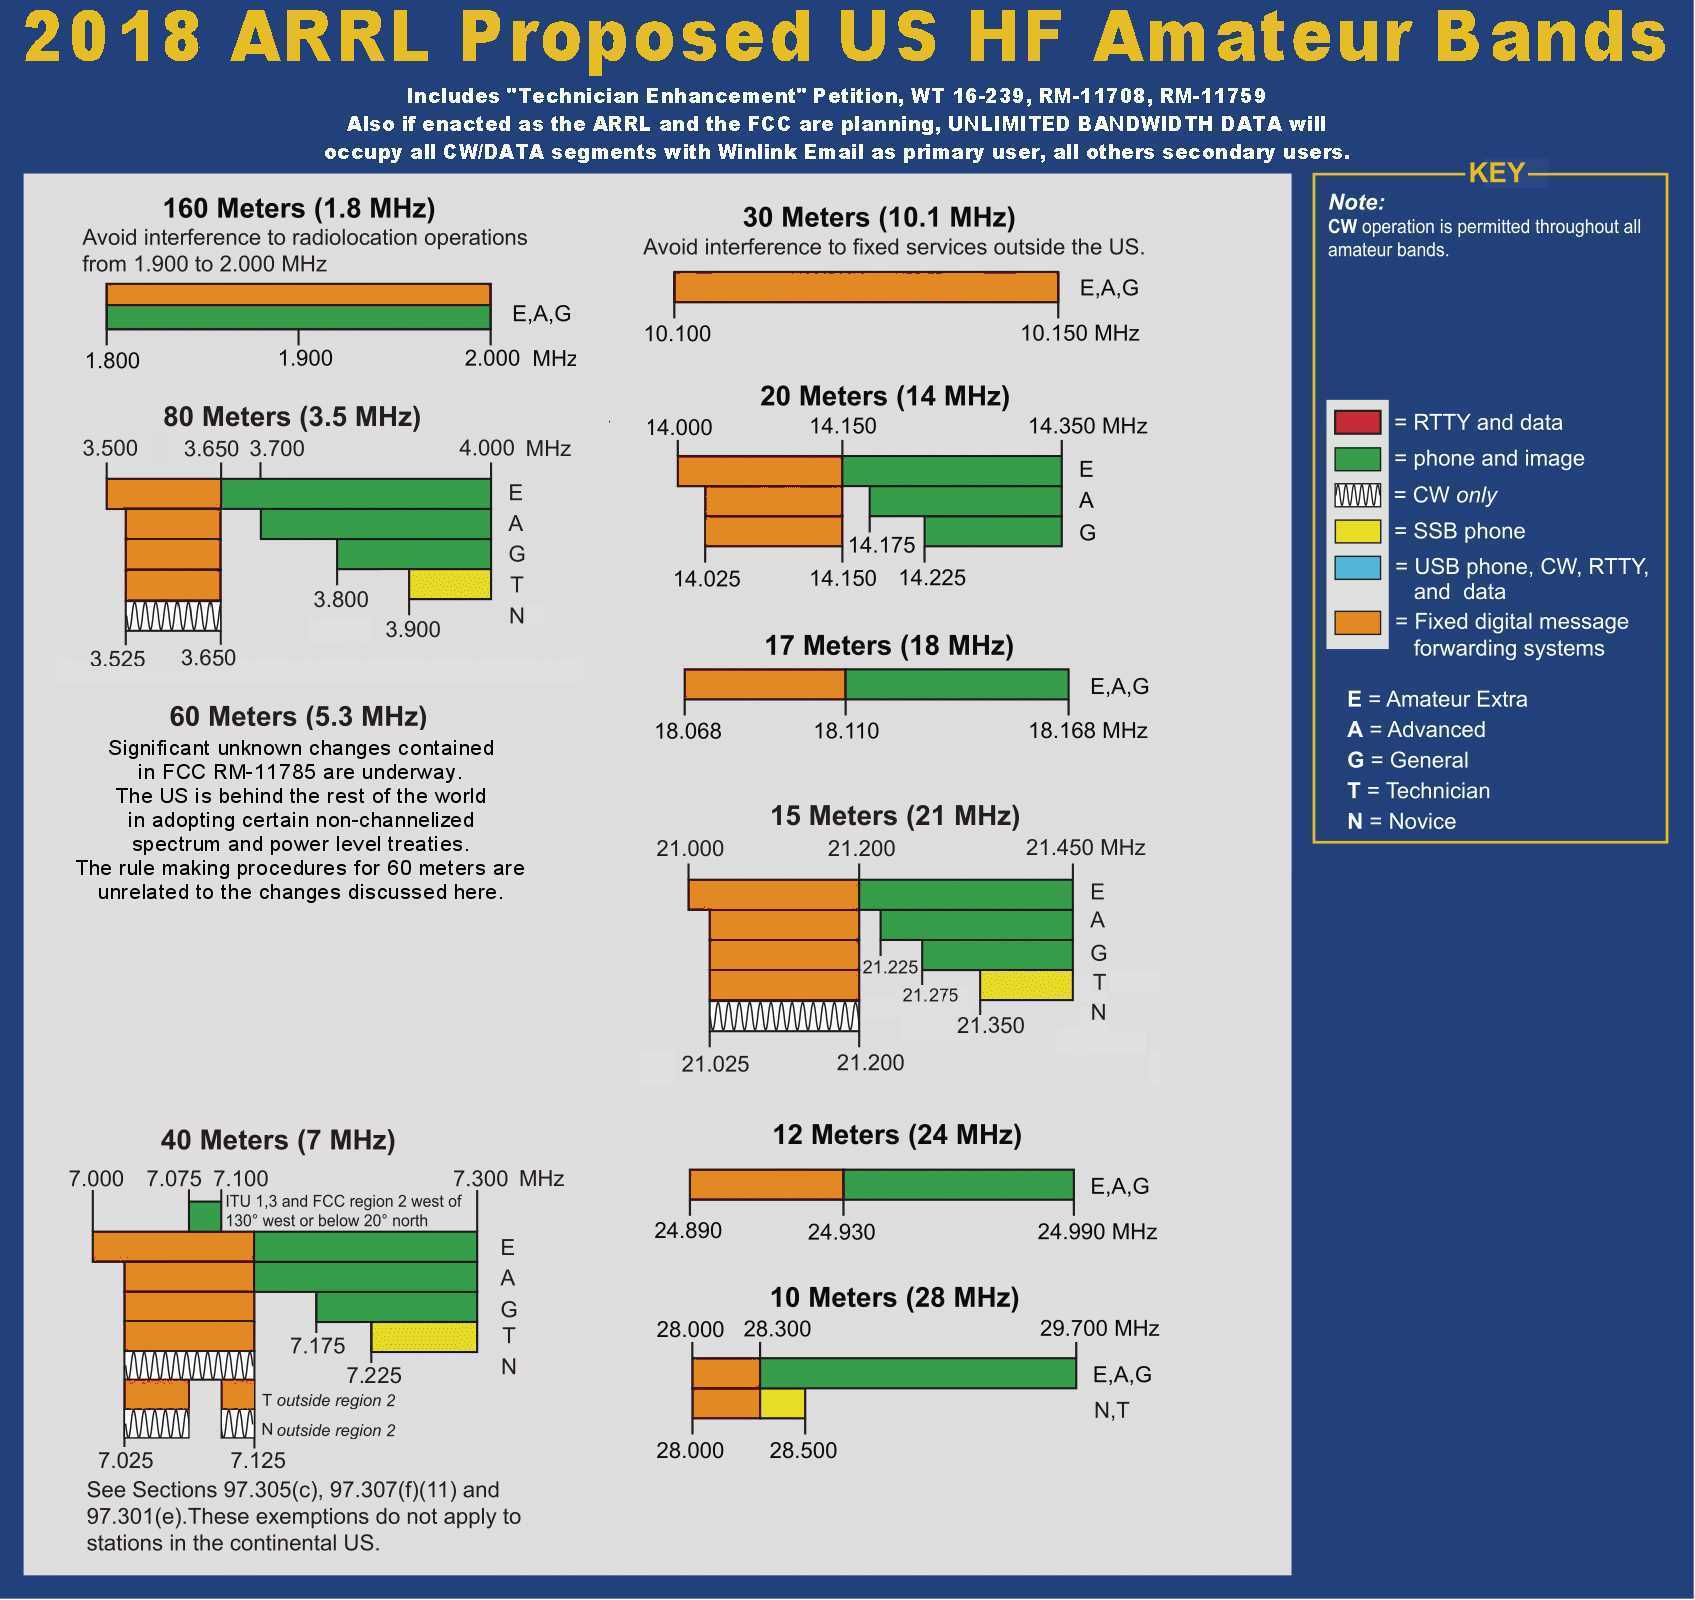 The Charts Above Show Changes To Radio Hf Bands That Soon Will Go Into Effect When Cur Collection Of Arrl Peions Are Adopted